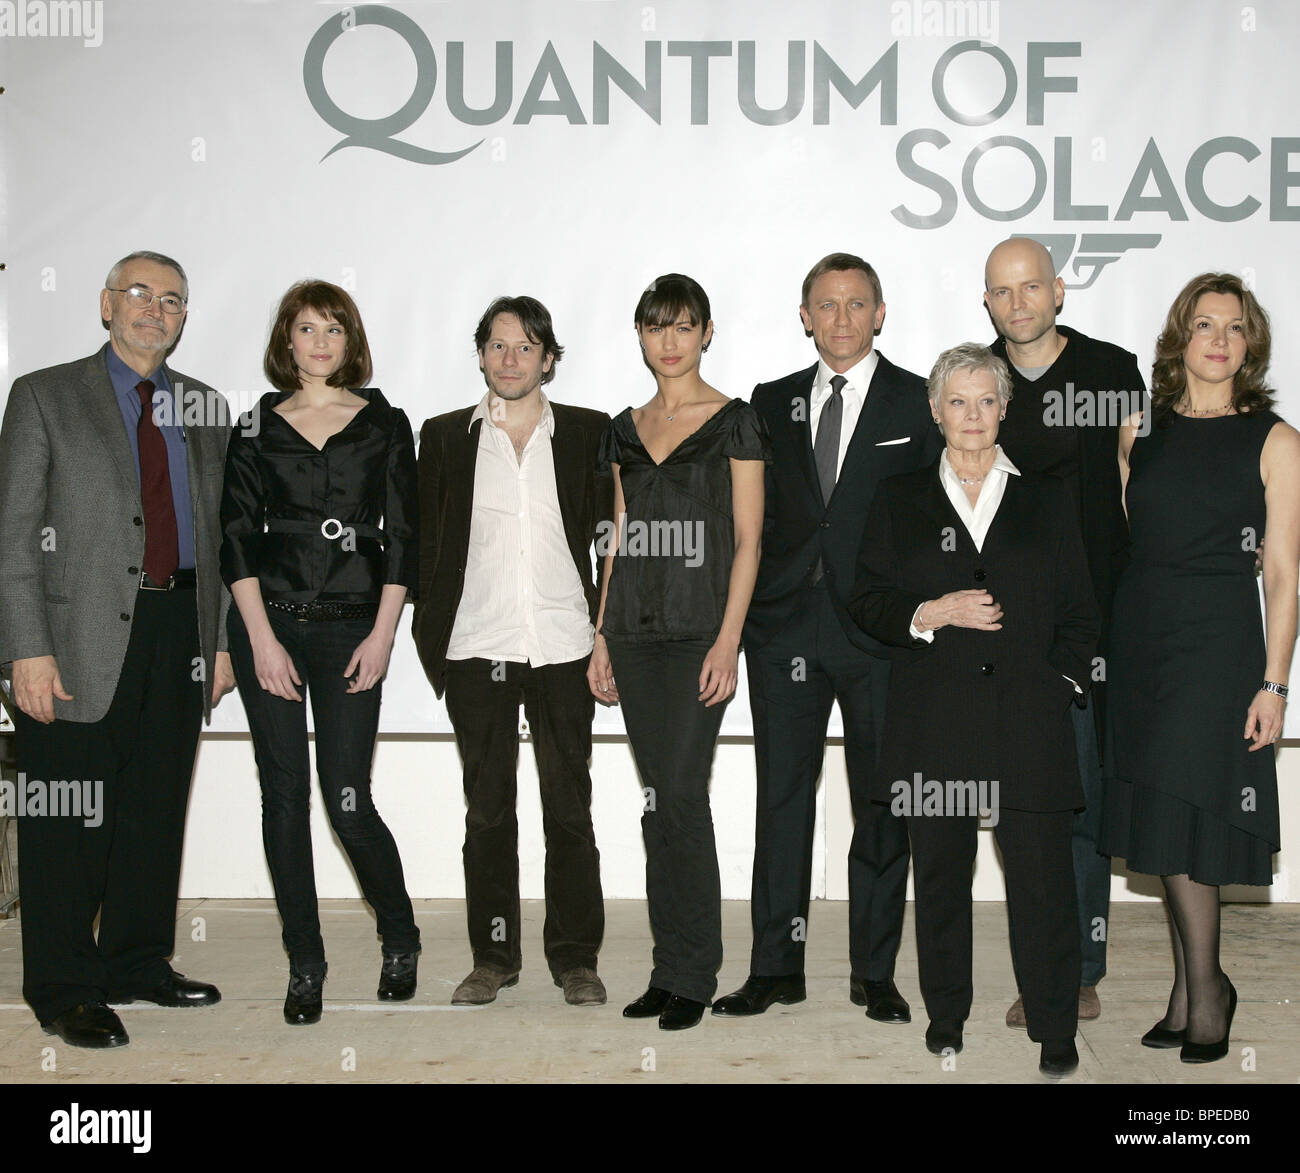 Quantum of Solace to be released in 2008 - Stock Image